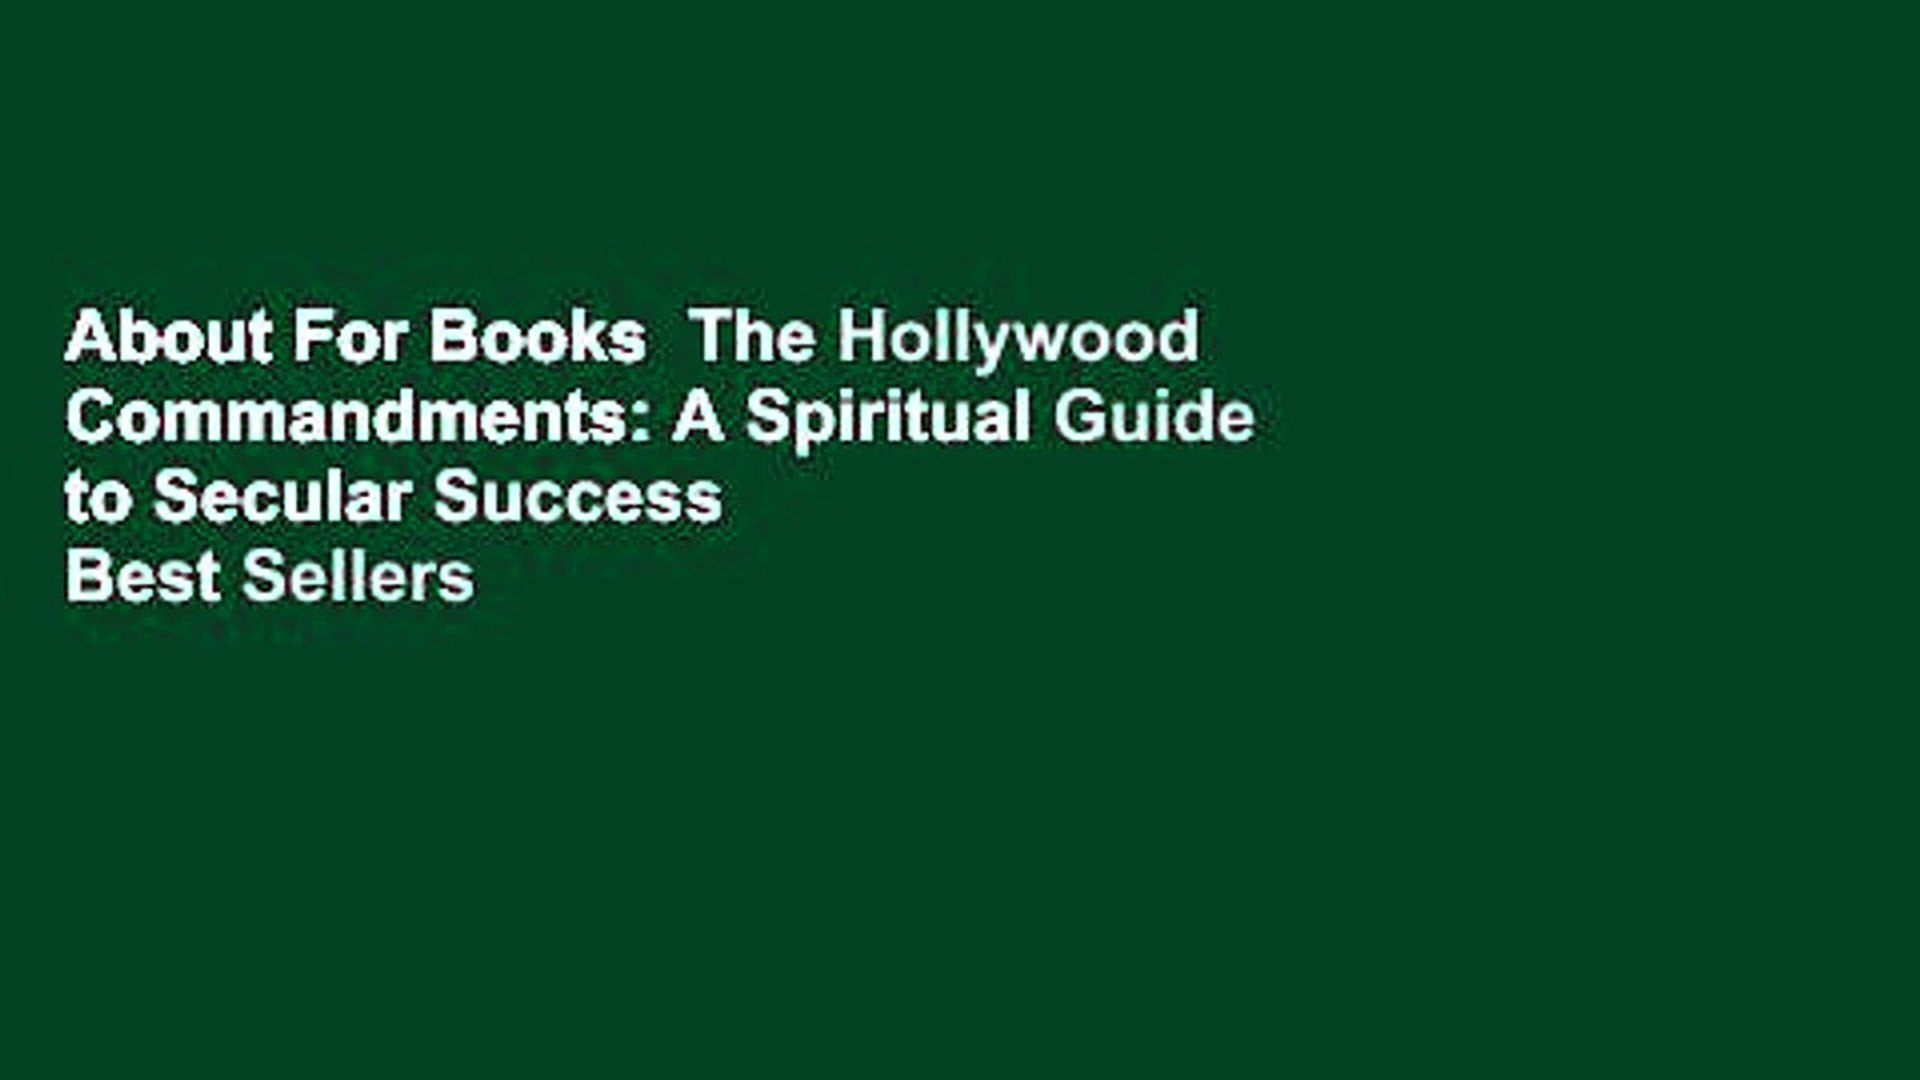 About For Books  The Hollywood Commandments: A Spiritual Guide to Secular Success  Best Sellers